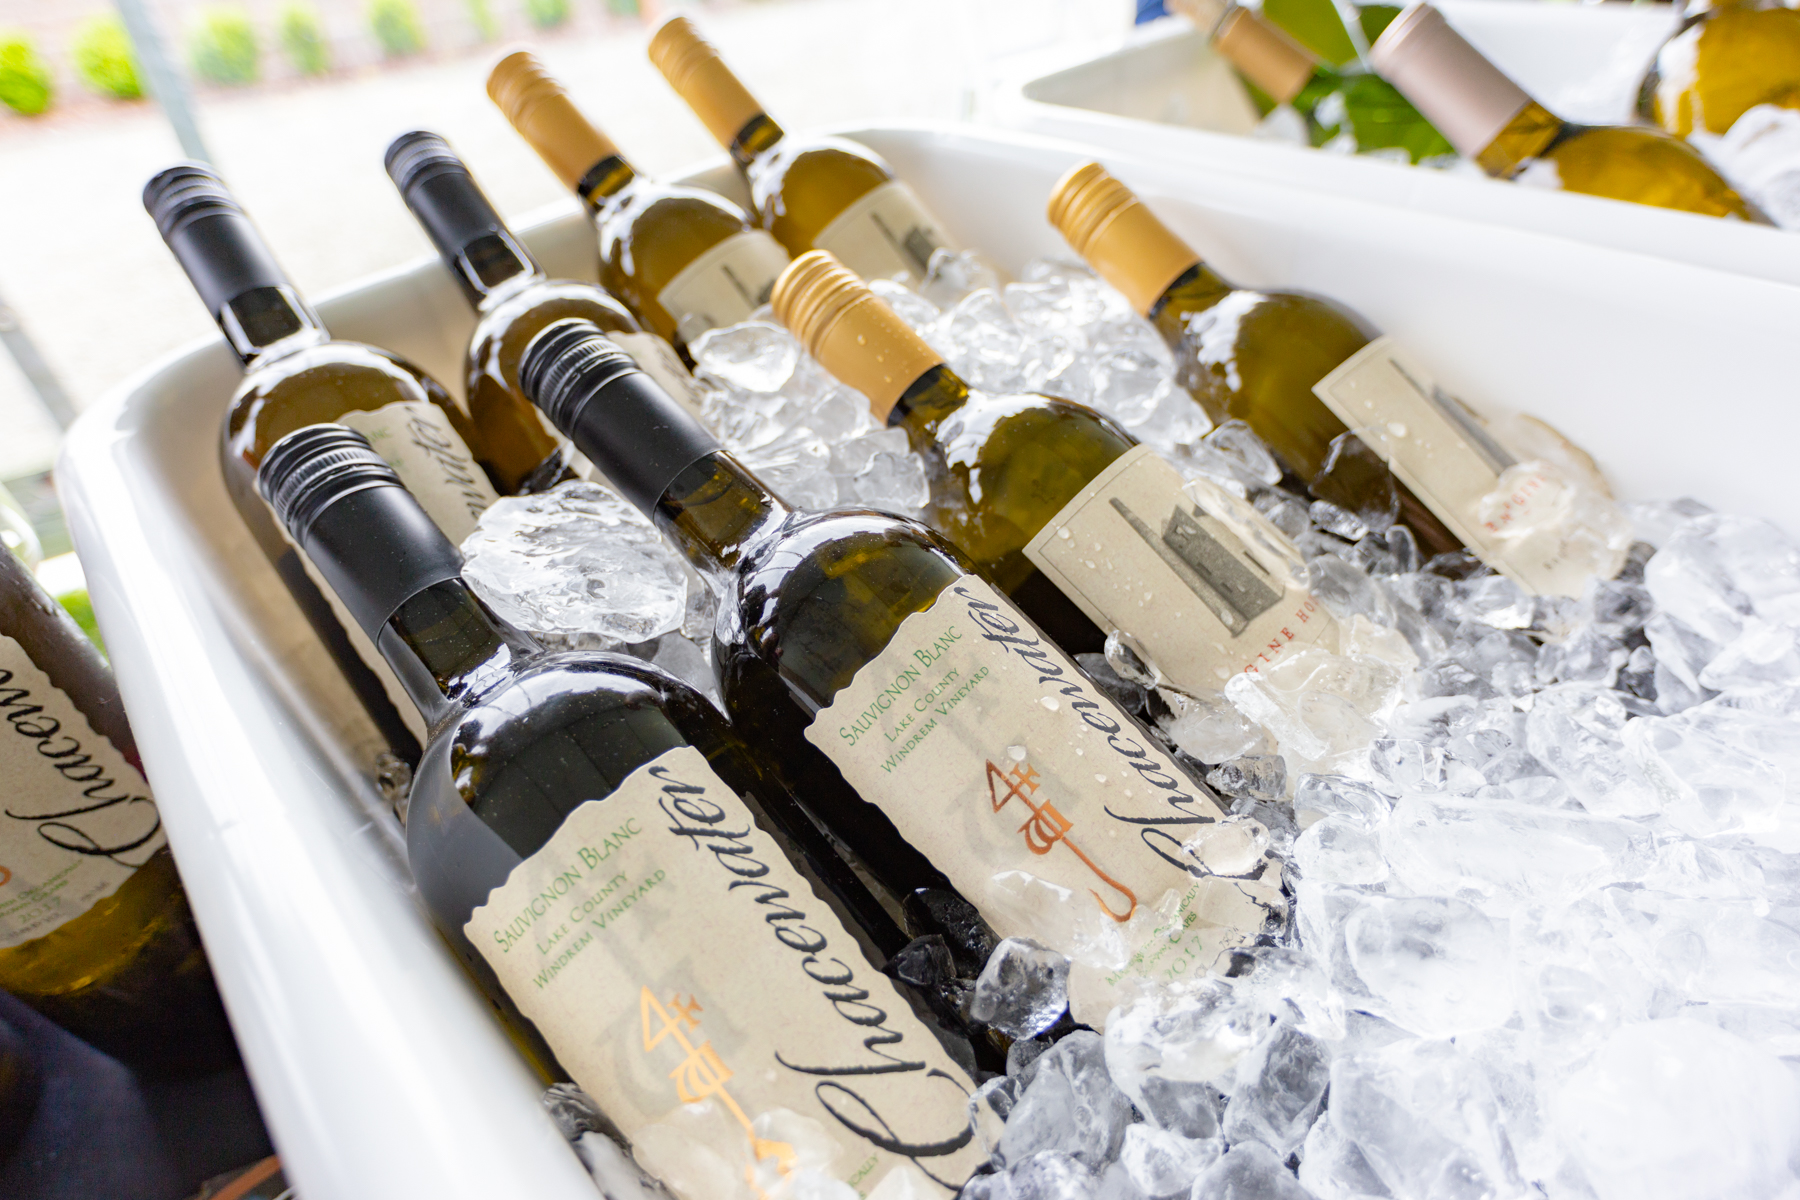 Sauvignon Blanc bottles chilling in ice tubs